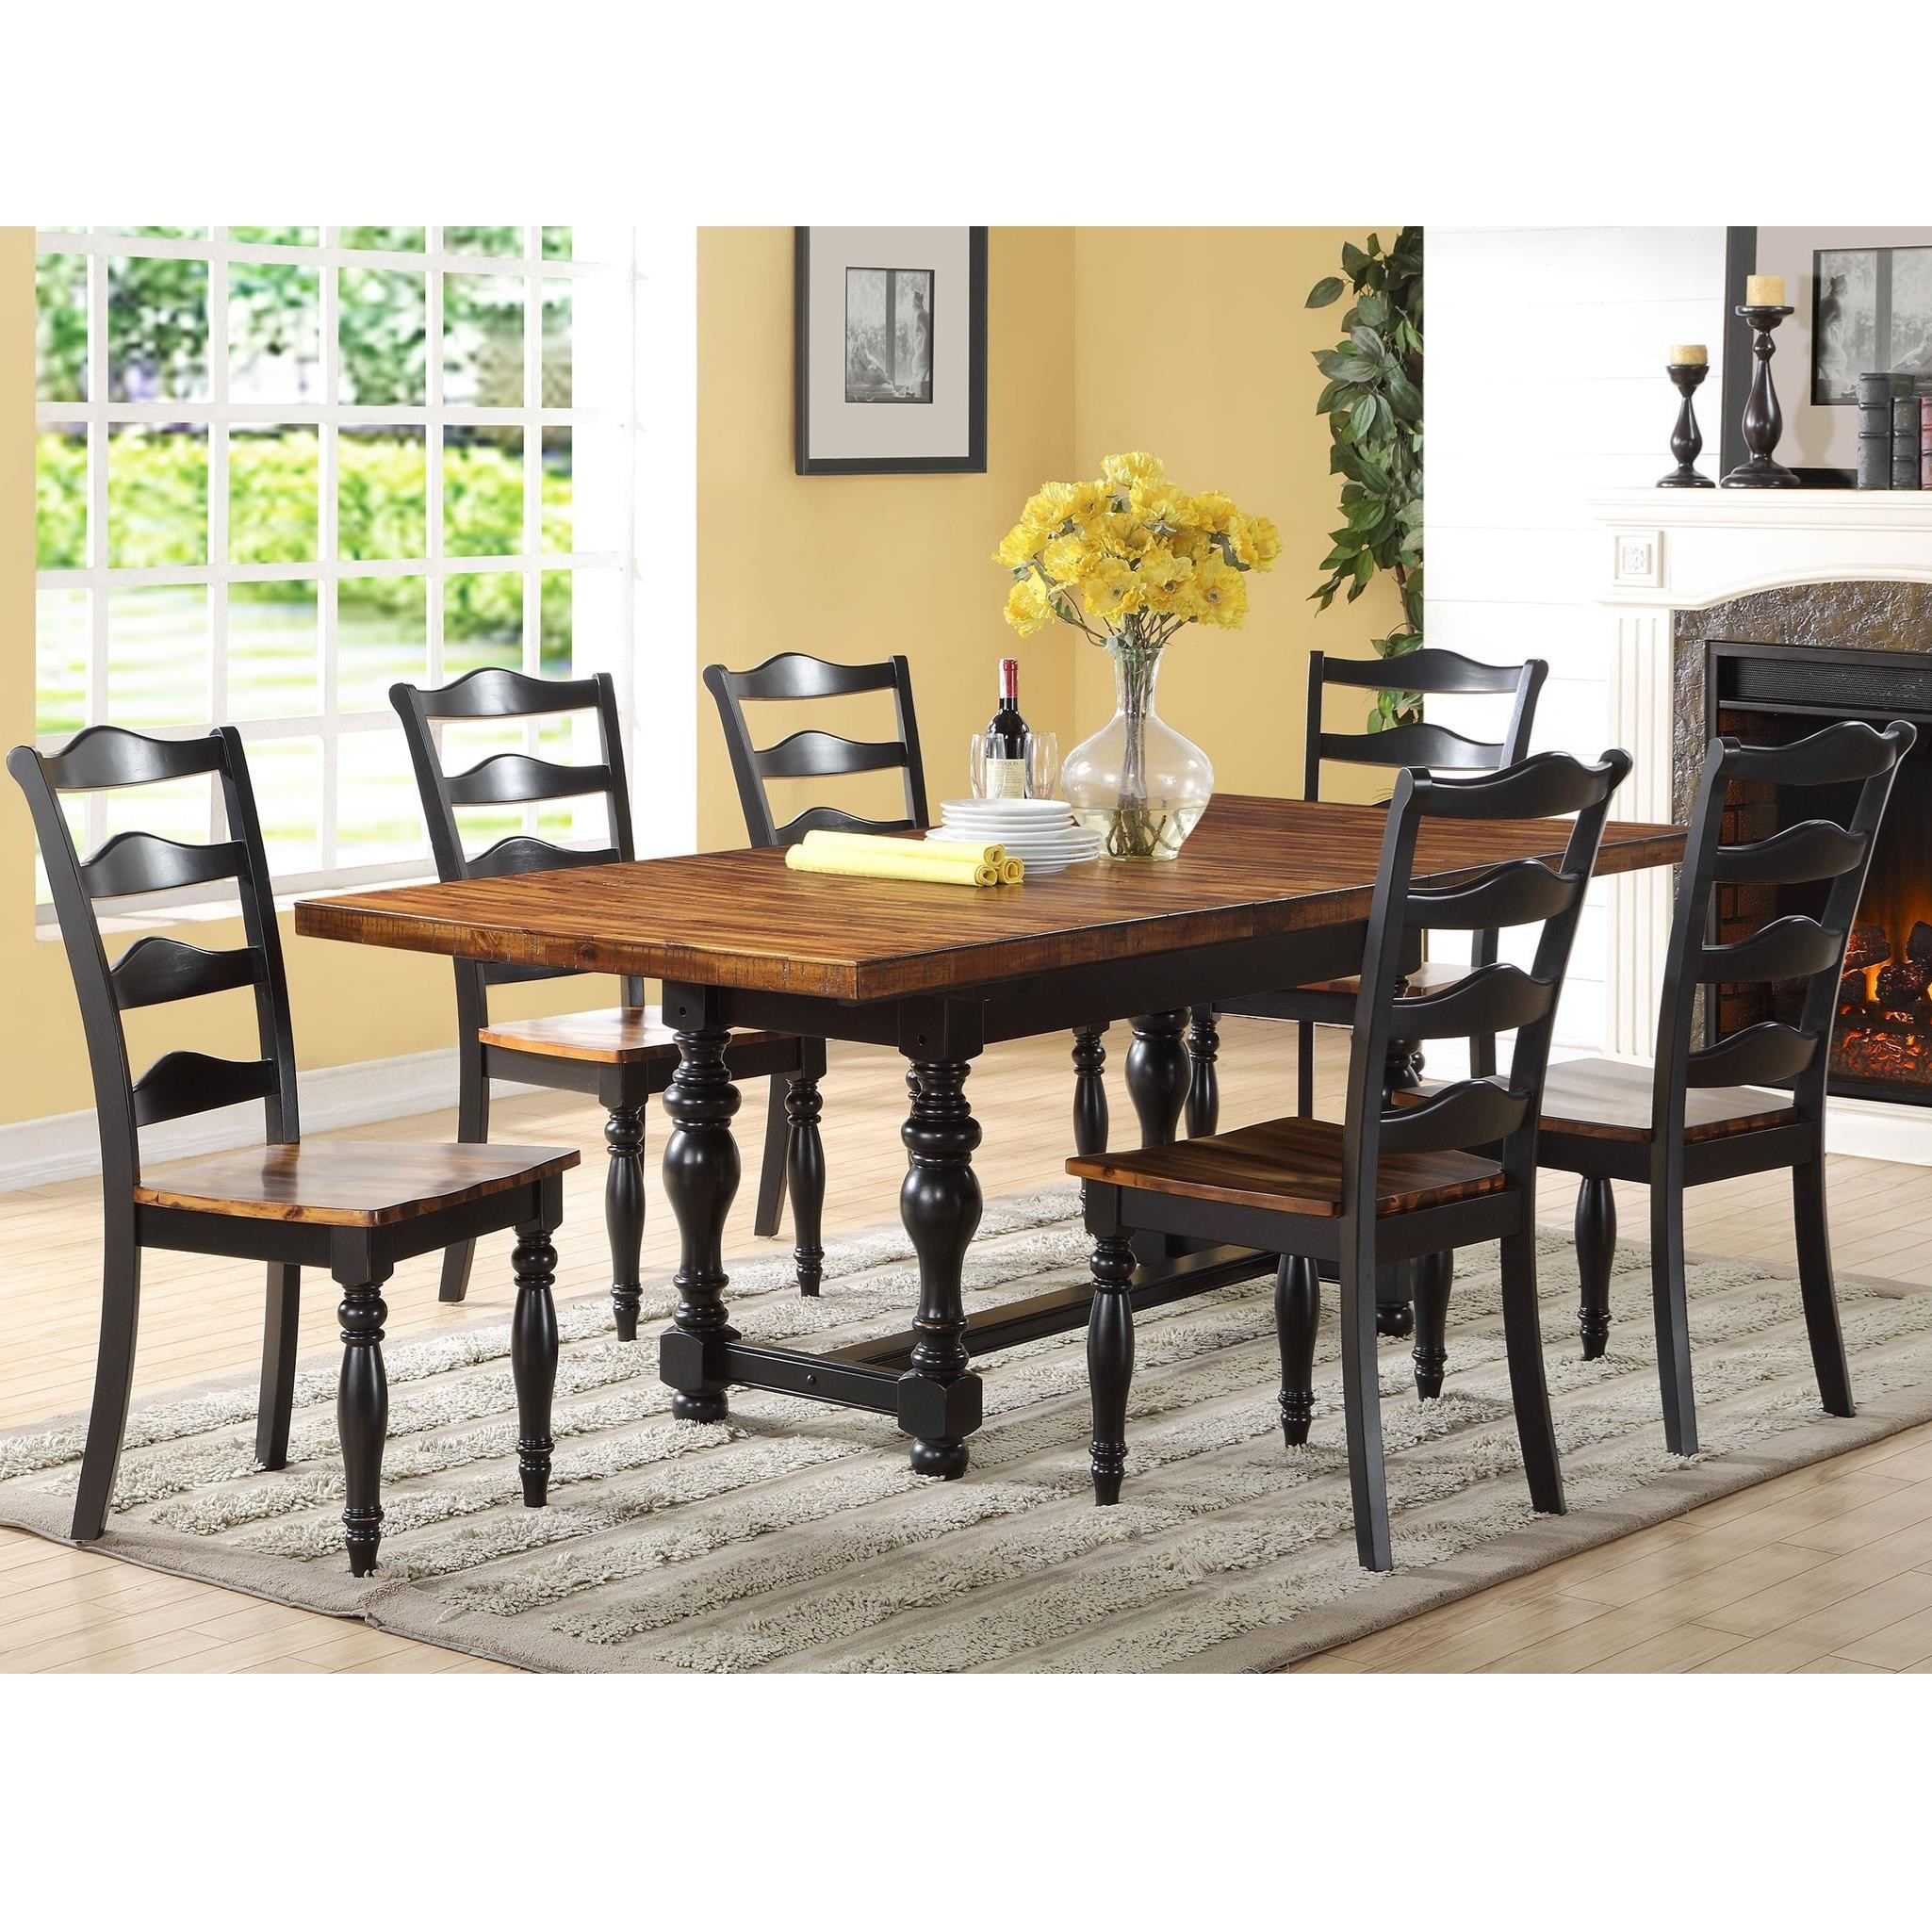 Where Is Winners Only Furniture Made: Winners Only Weston 7 Piece Dining Set With Trestle Table